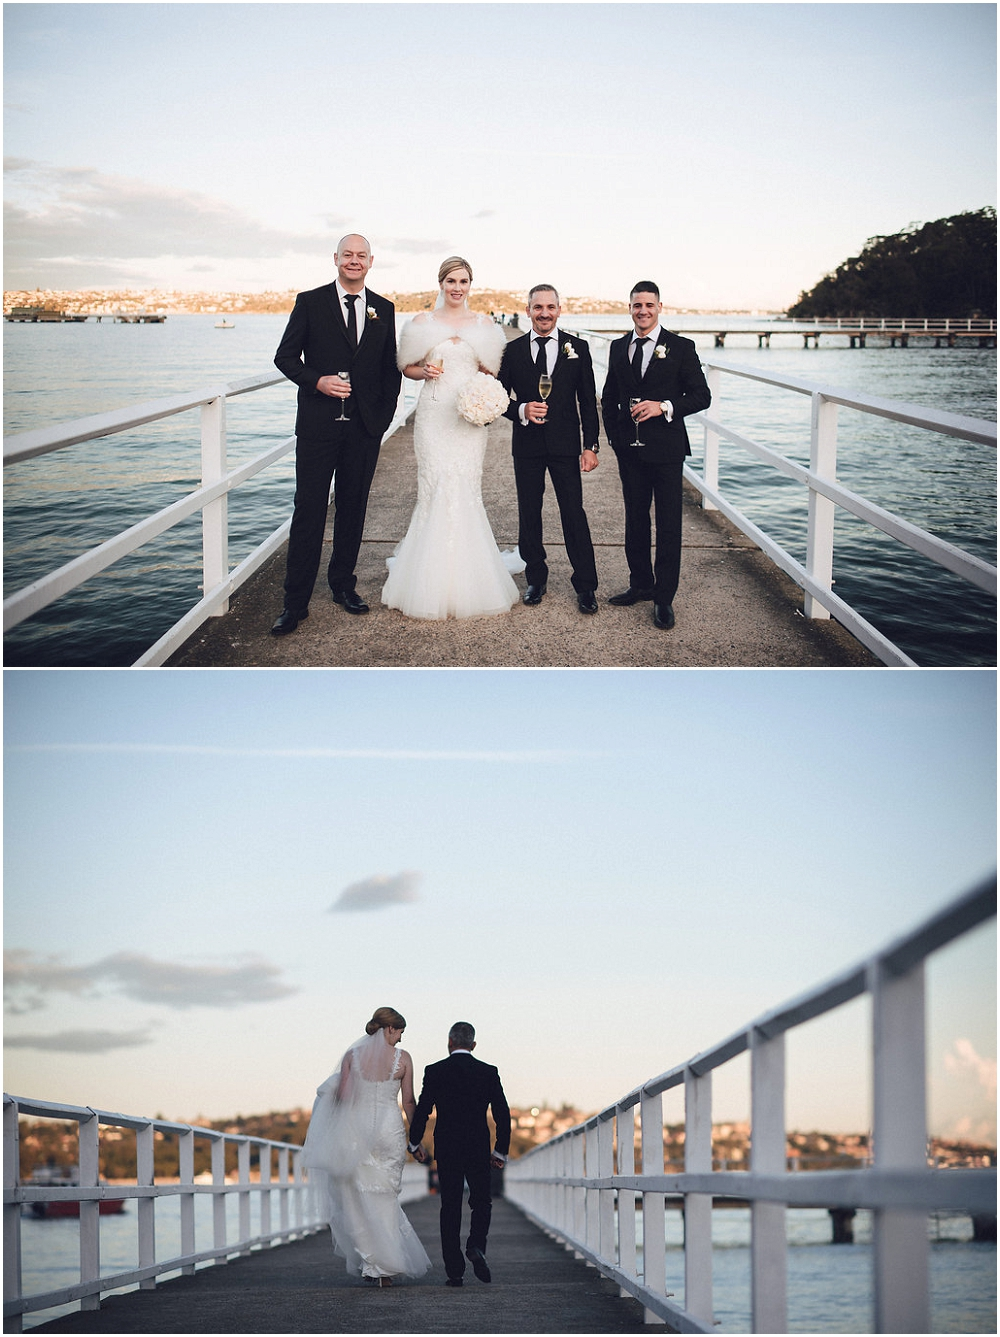 Wedding at Sergeant's Mess in Chowder Bay